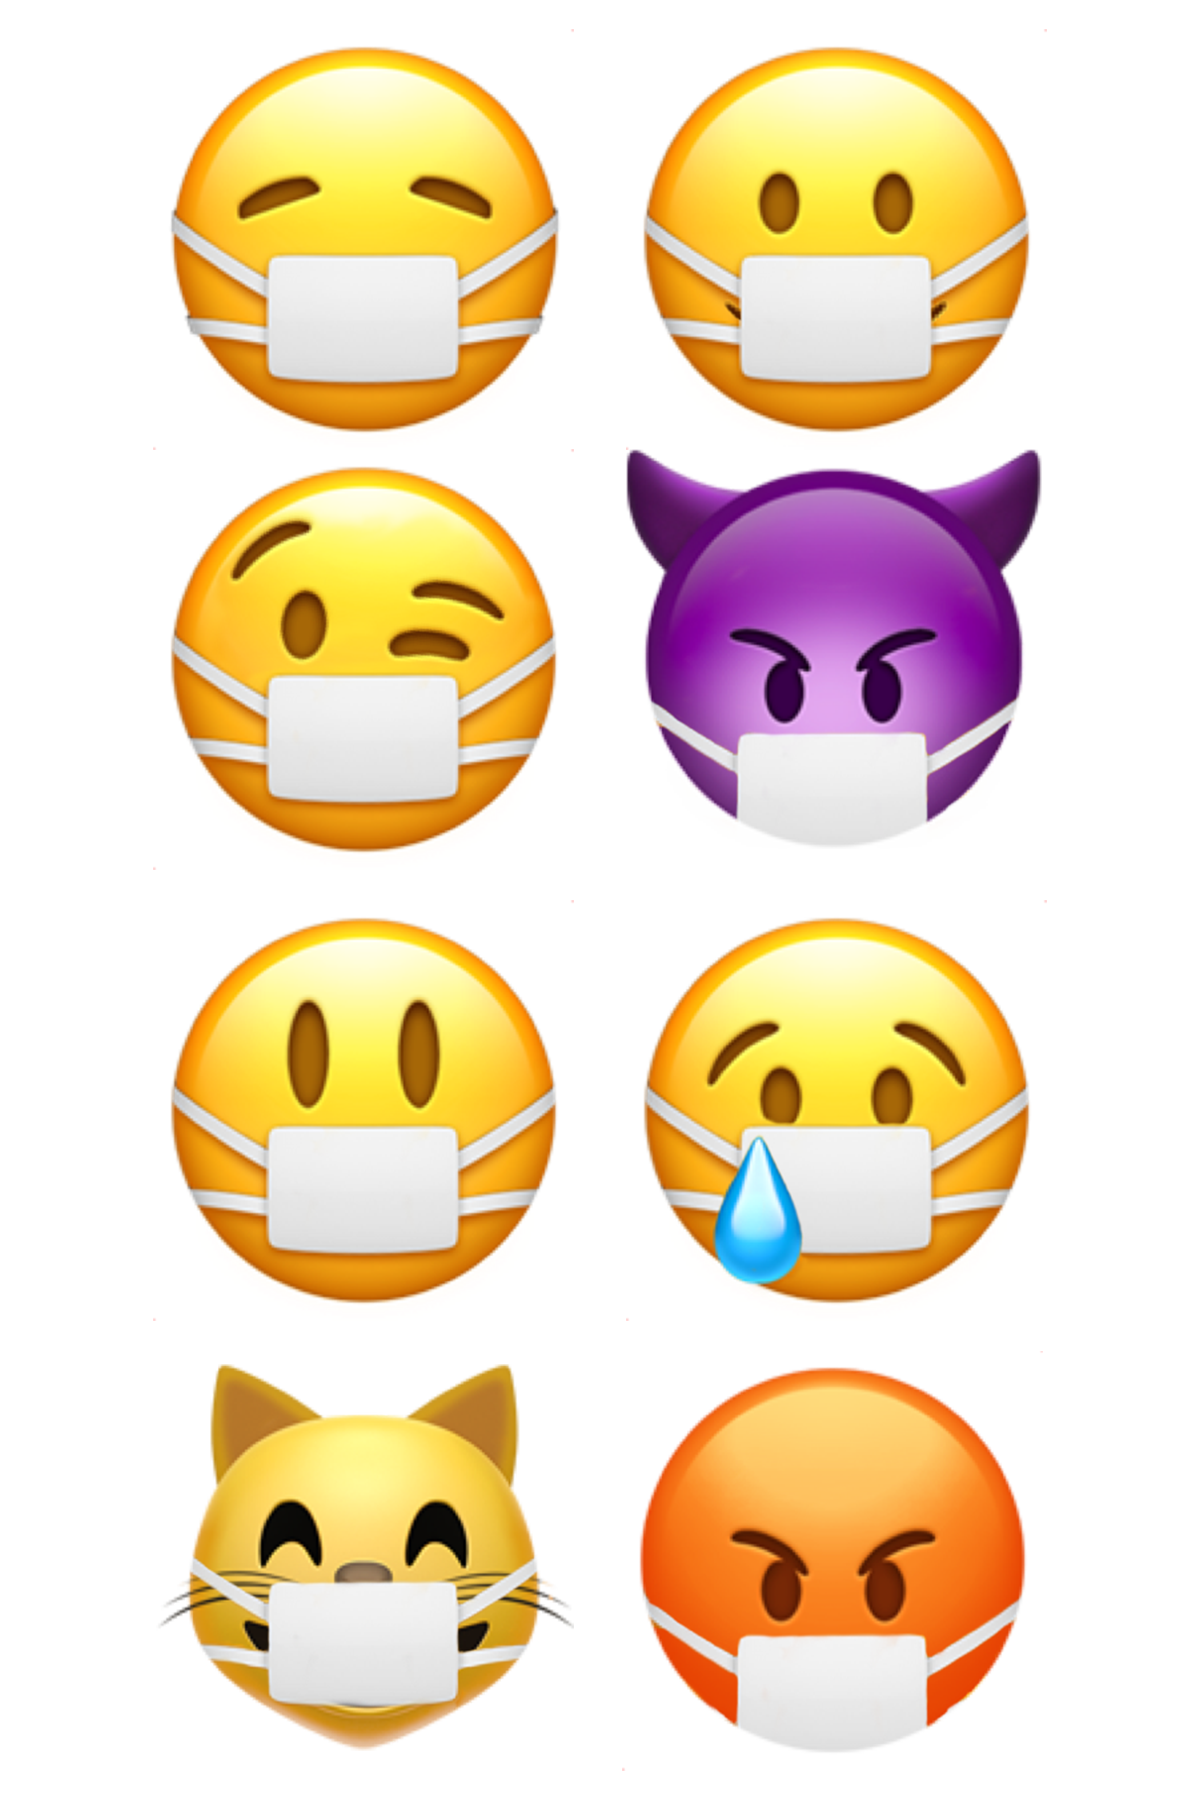 Original 'Face With Medical Mask' Emoji on the left, proposed 'Smiling Face with Medical Mask' on the right